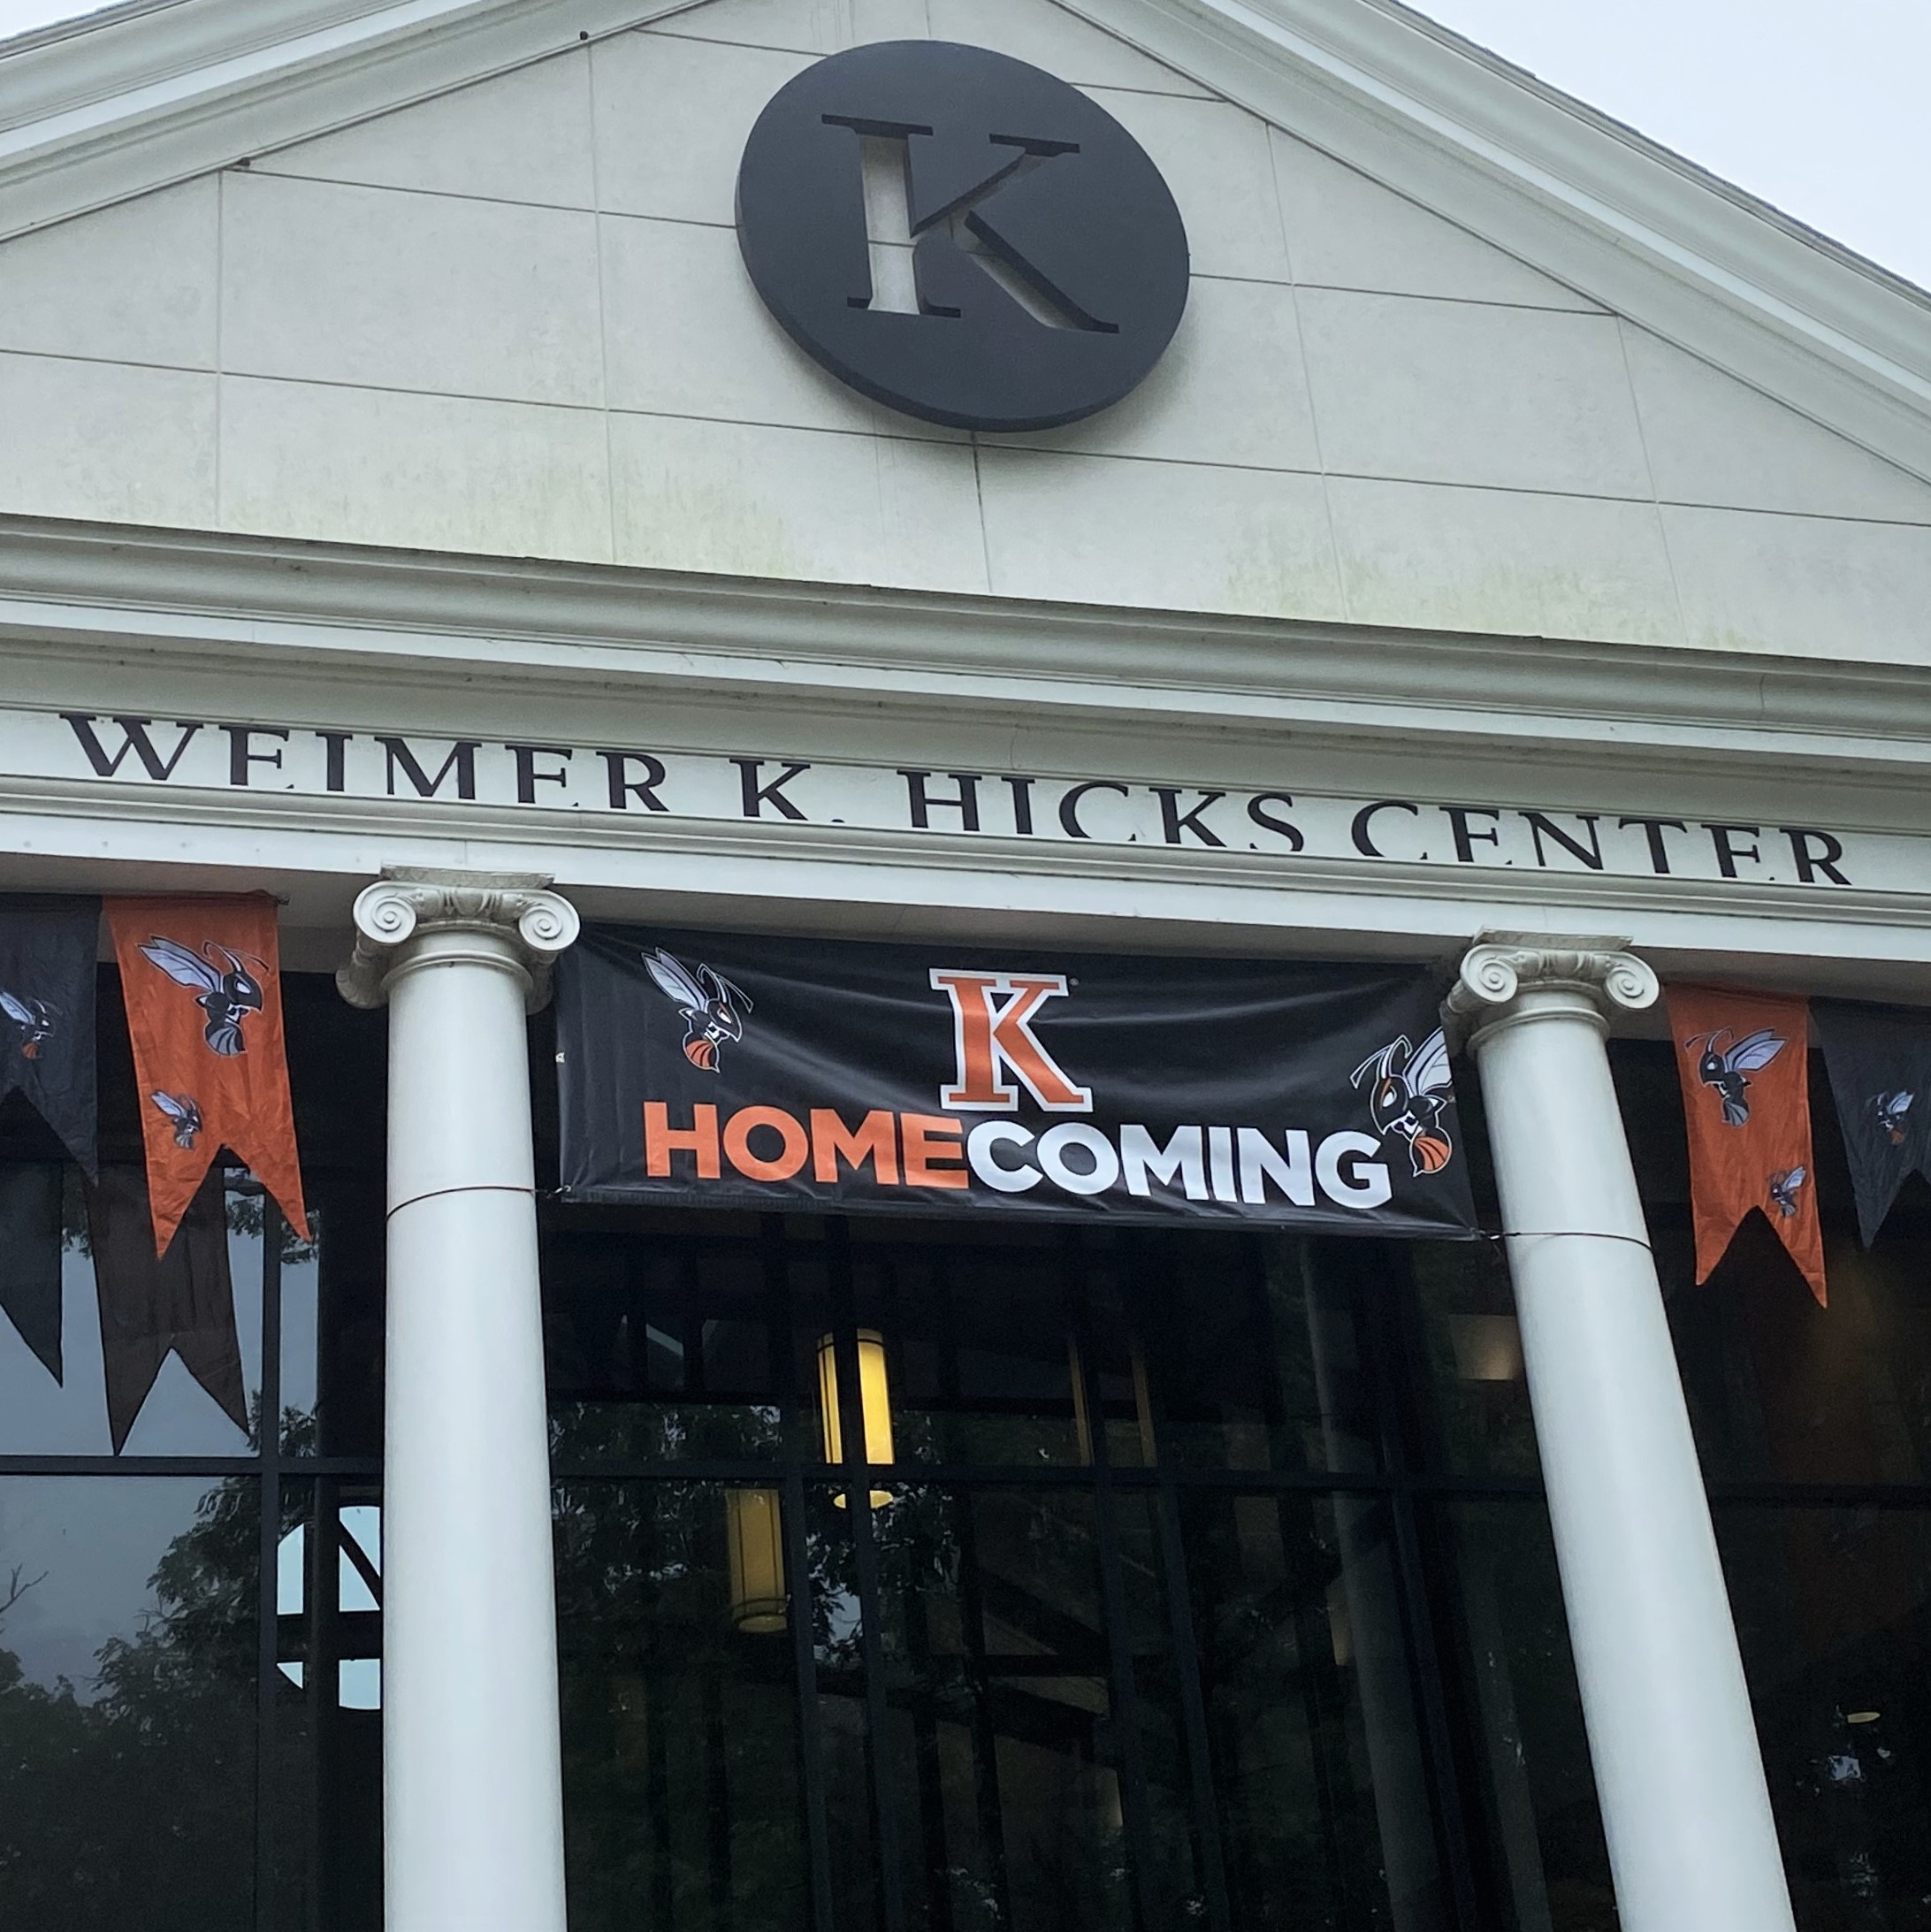 Hicks Student Center with Homecoming banner